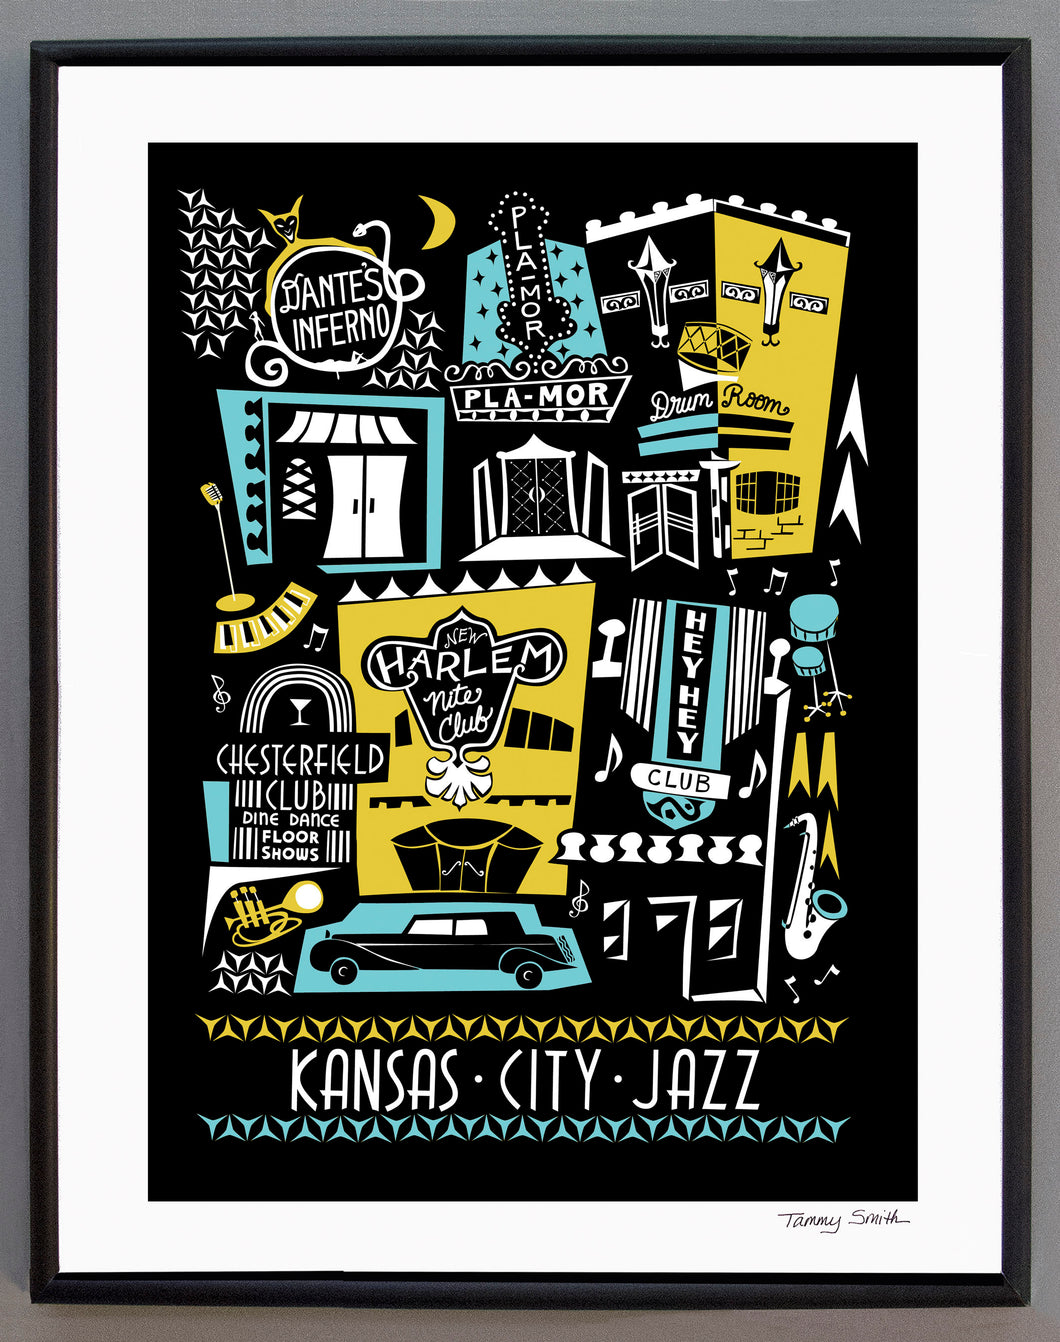 Kansas City Jazz Club 18th and Vine Art Print